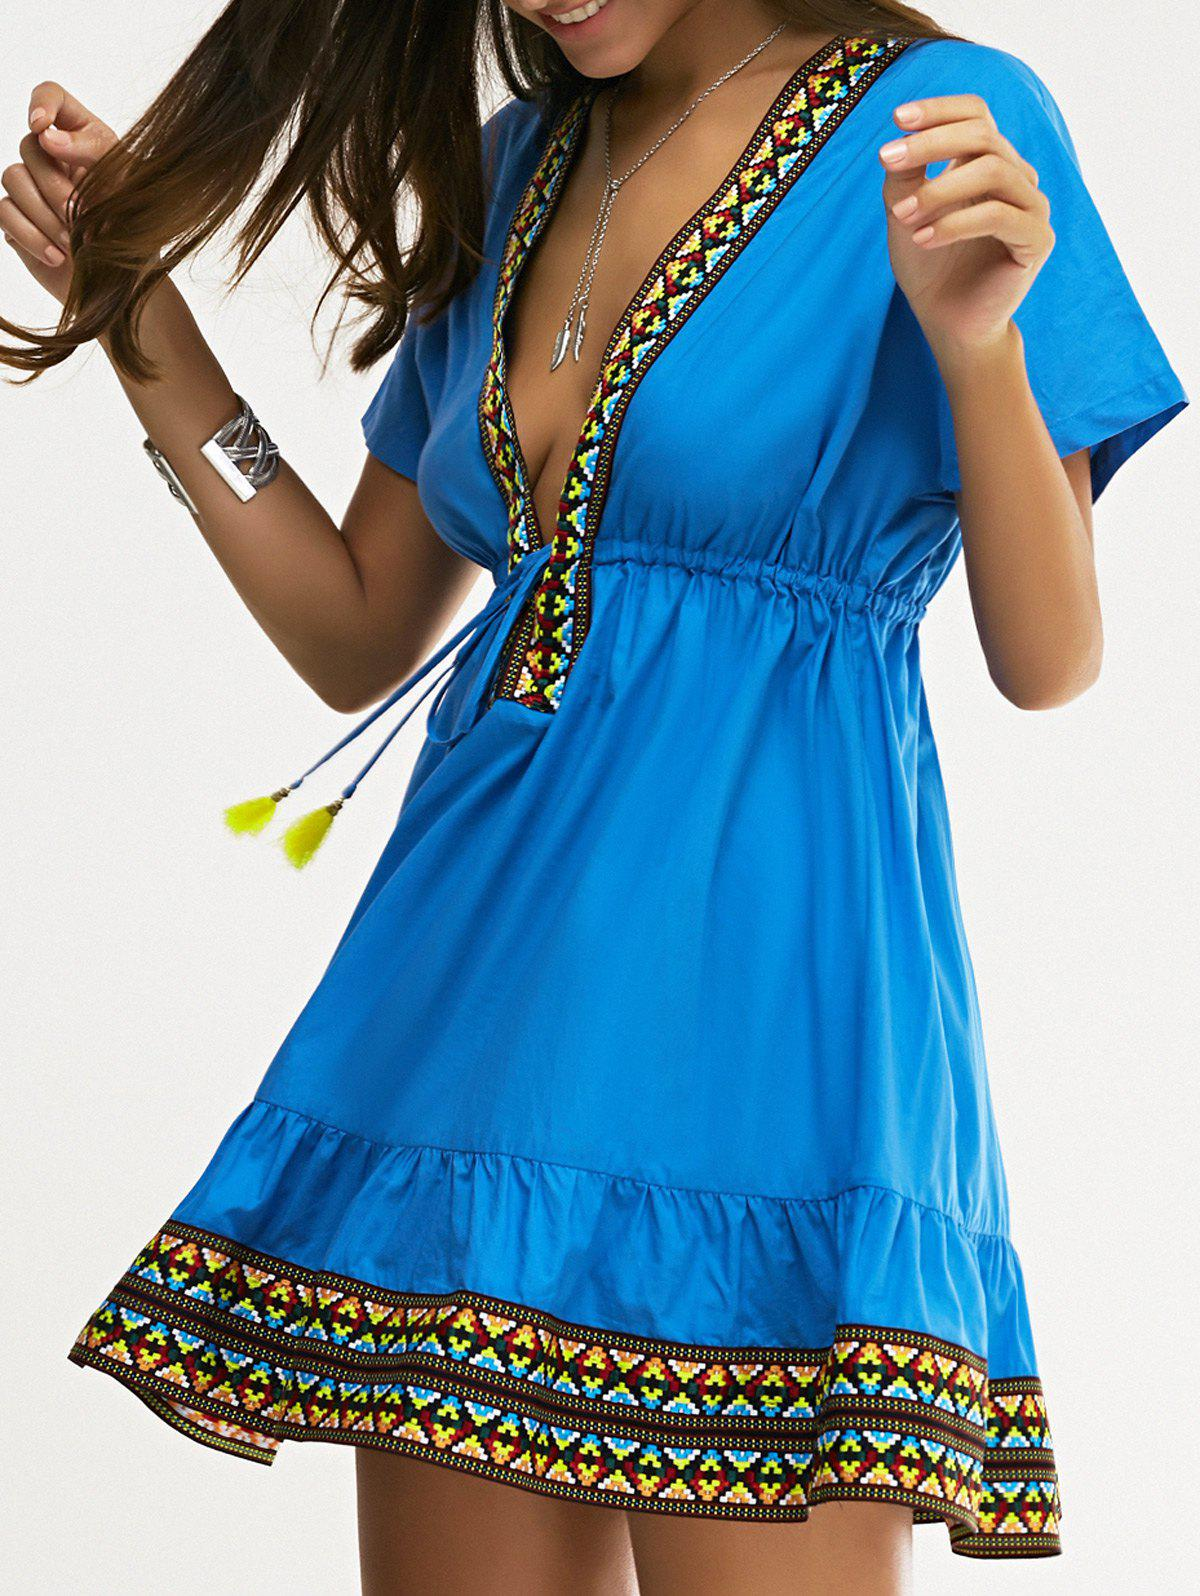 Ethnic Style Women's Slimming Plunging Neck Low-Cut Dress - XL SAPPHIRE BLUE